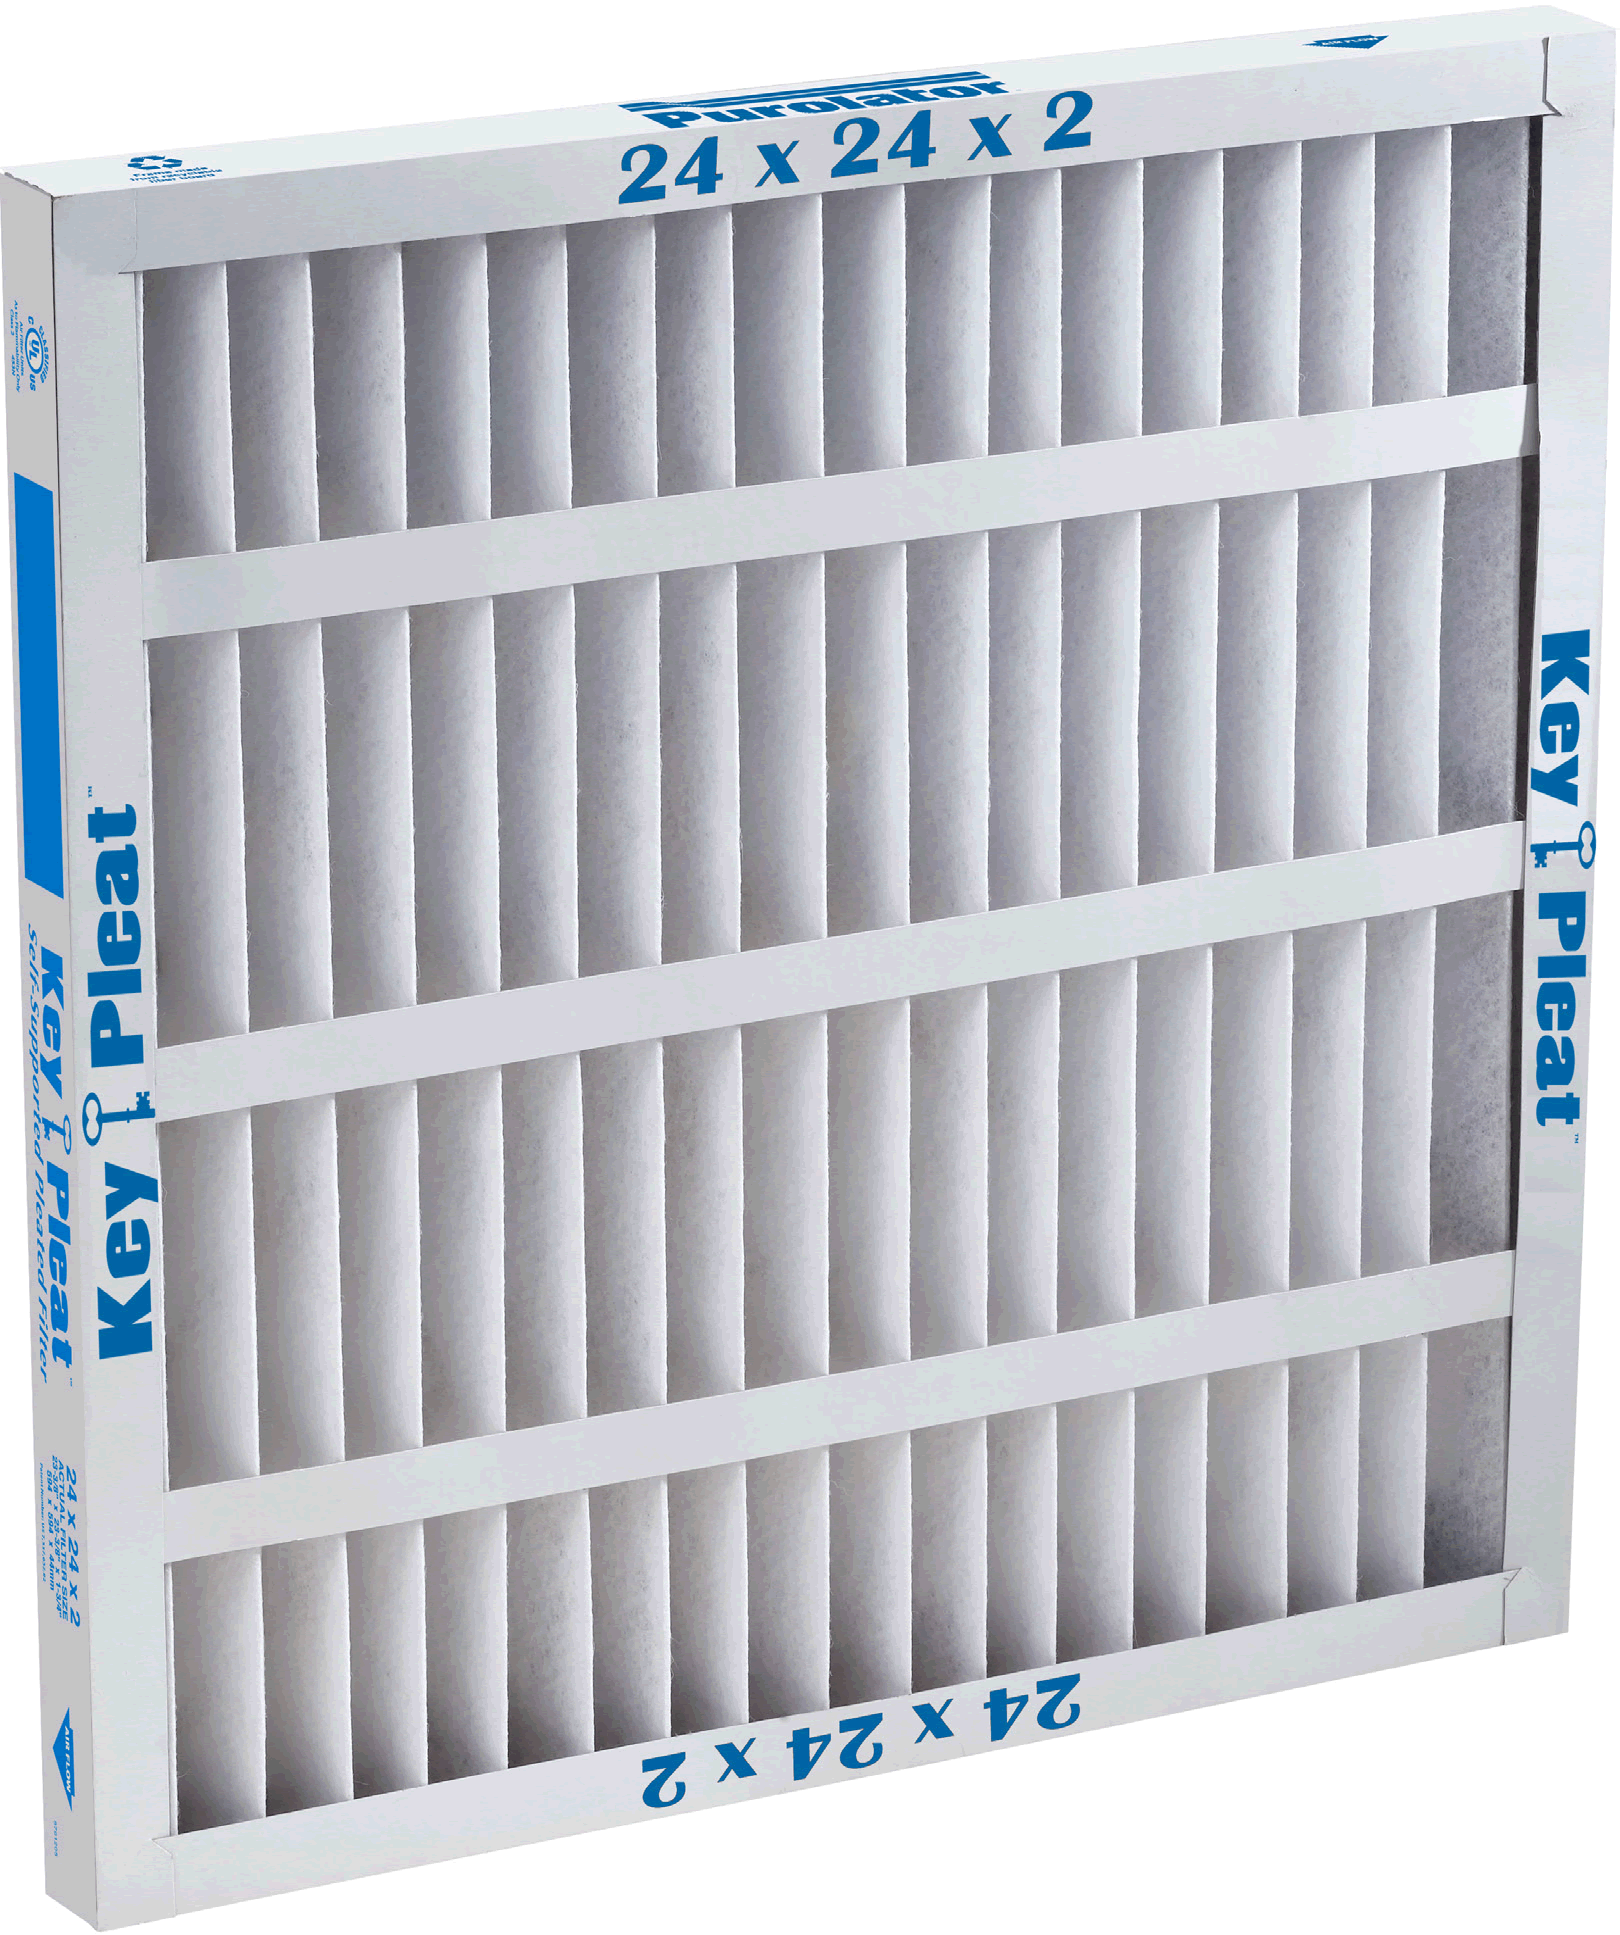 14 W x 14 H x 1 D Pack of 6 Mechanical MERV 8 Pack of 6 14 W x 14 H x 1 D Sterling Seal KP-5251079032x6 Purolator Key Pleat Extended Surface Pleated Air Filter